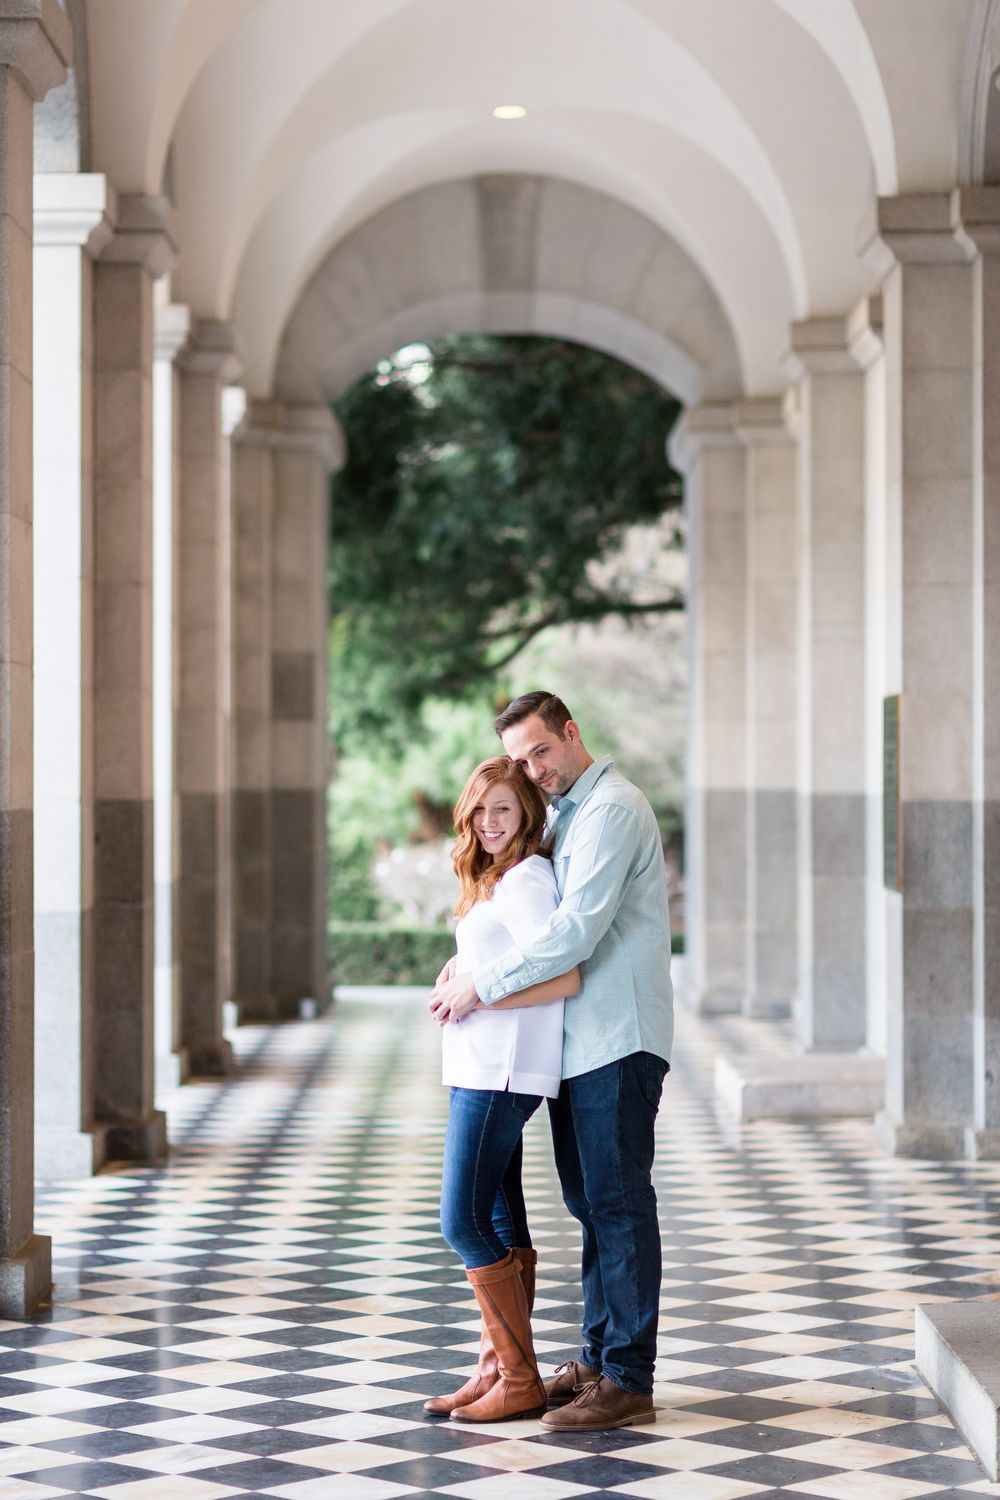 State Capitol Downtown Sacramento Engagement Photography Justin Alyssa Wedding Photography And Videography Sacramento Photography California Wedding Photography